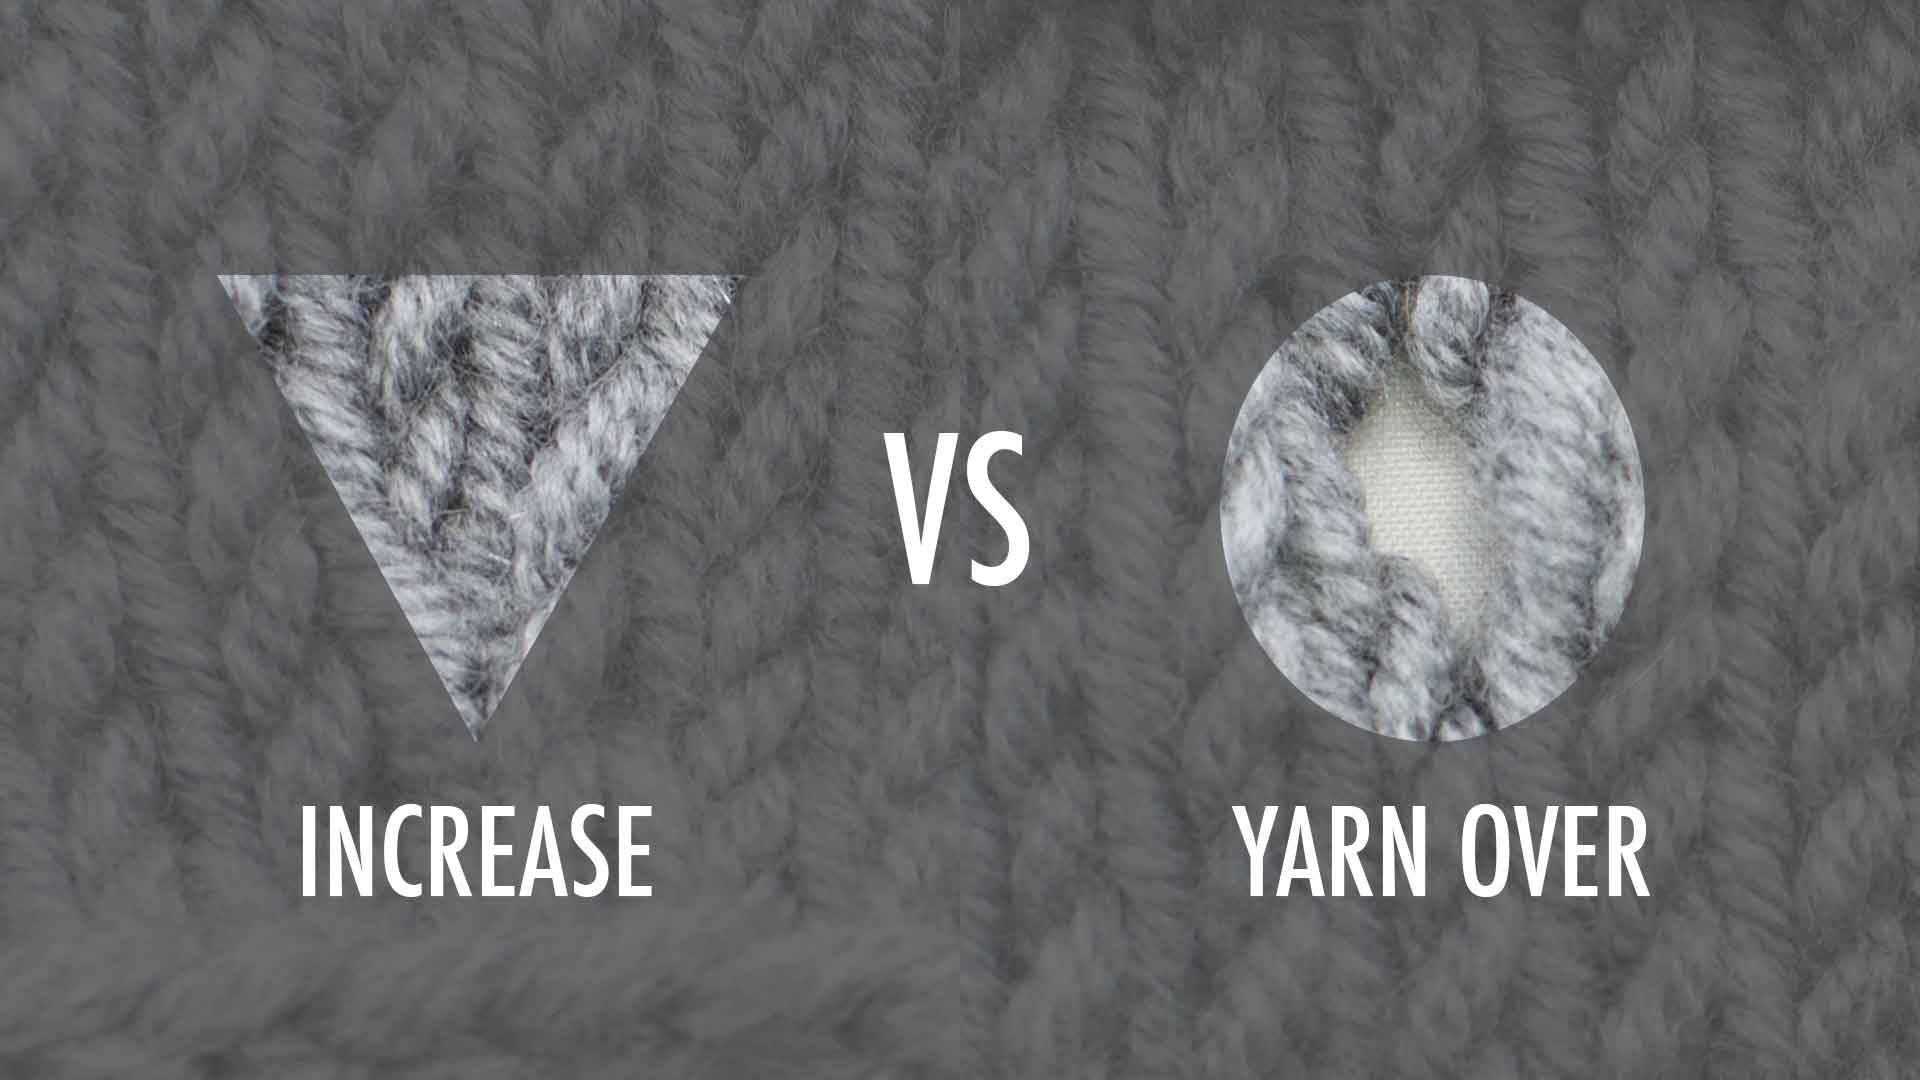 Increases and Yarn Overs Compared